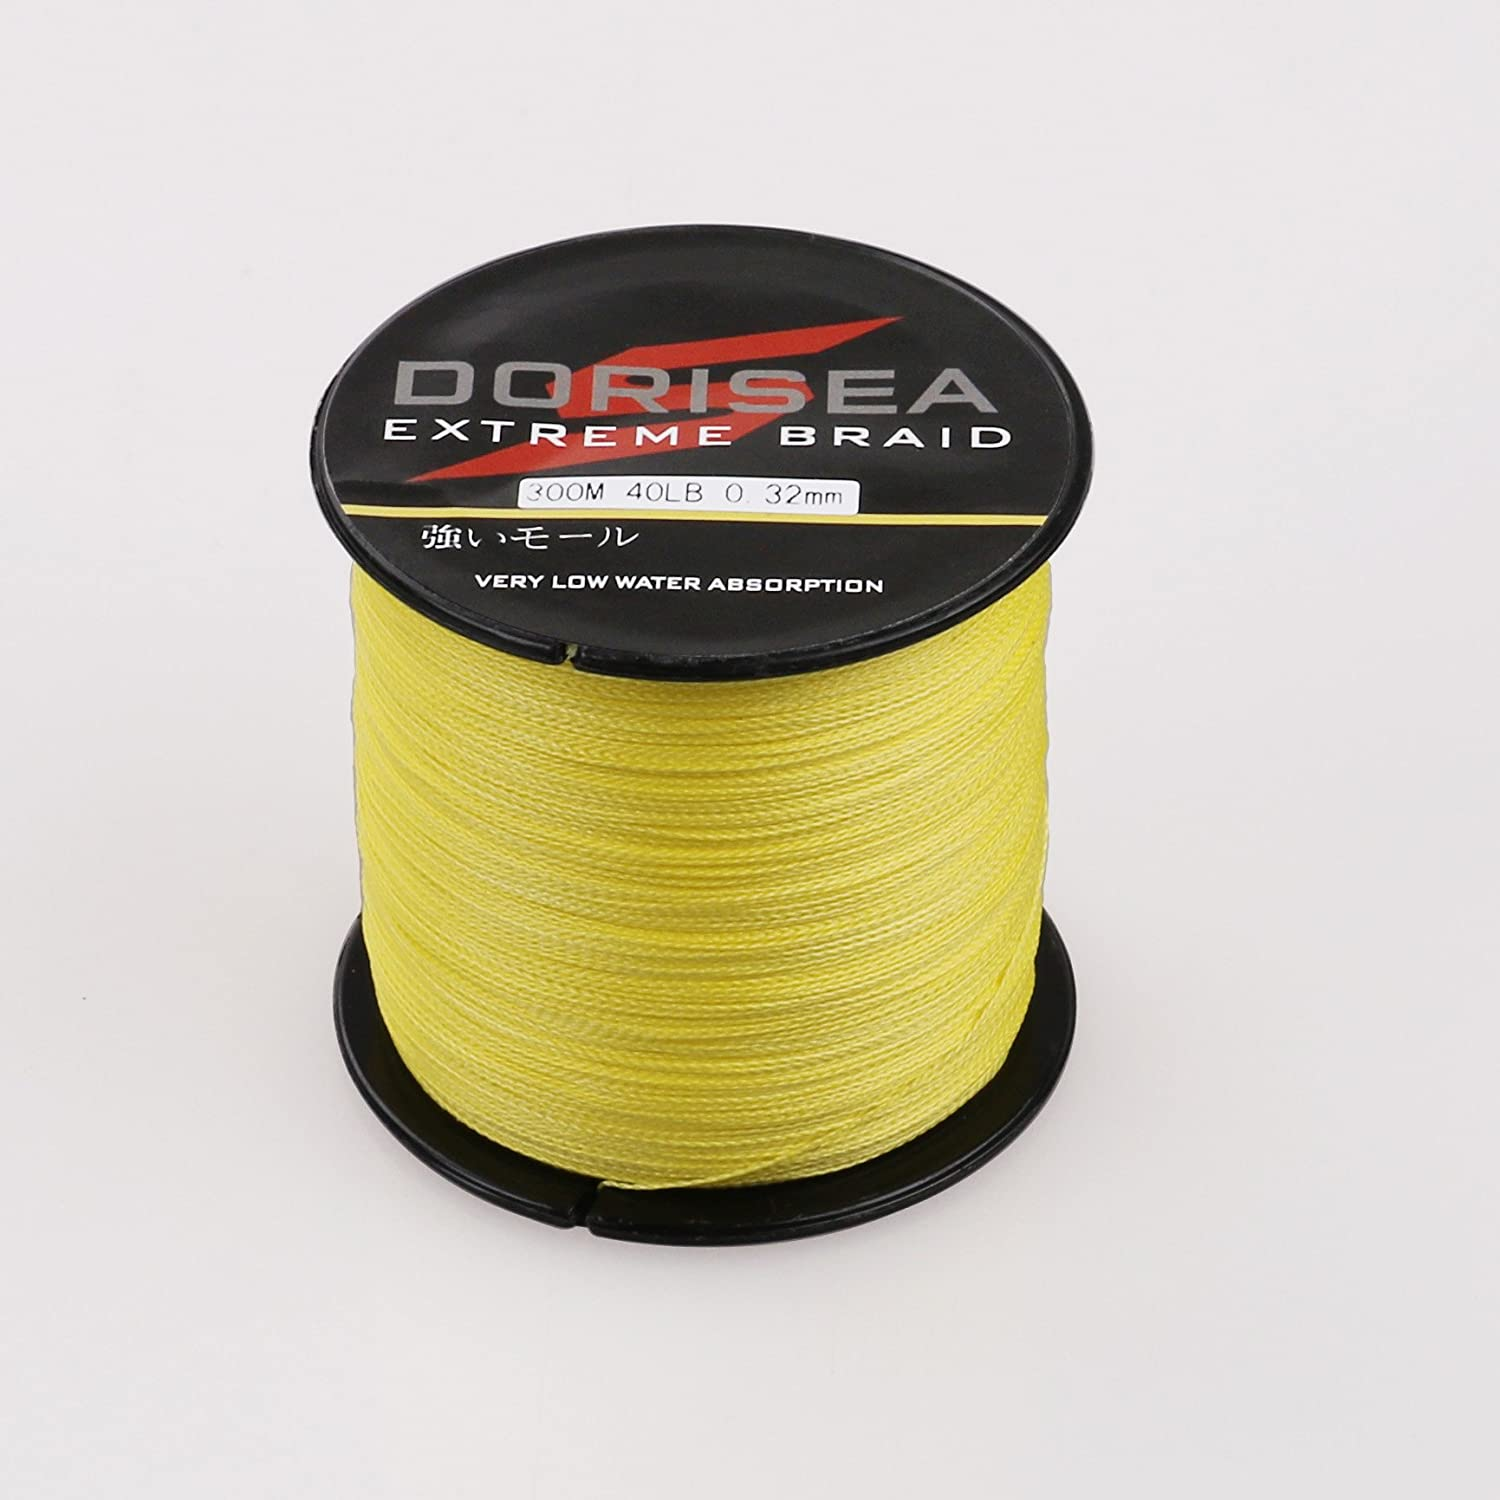 Dorisea Extreme Braid 100 Pe Yellow Braided Fishing Line 109Yards-2187Yards 6-550Lb Test Fishing Wire Fishing String Incredible Superline Zero Stretch